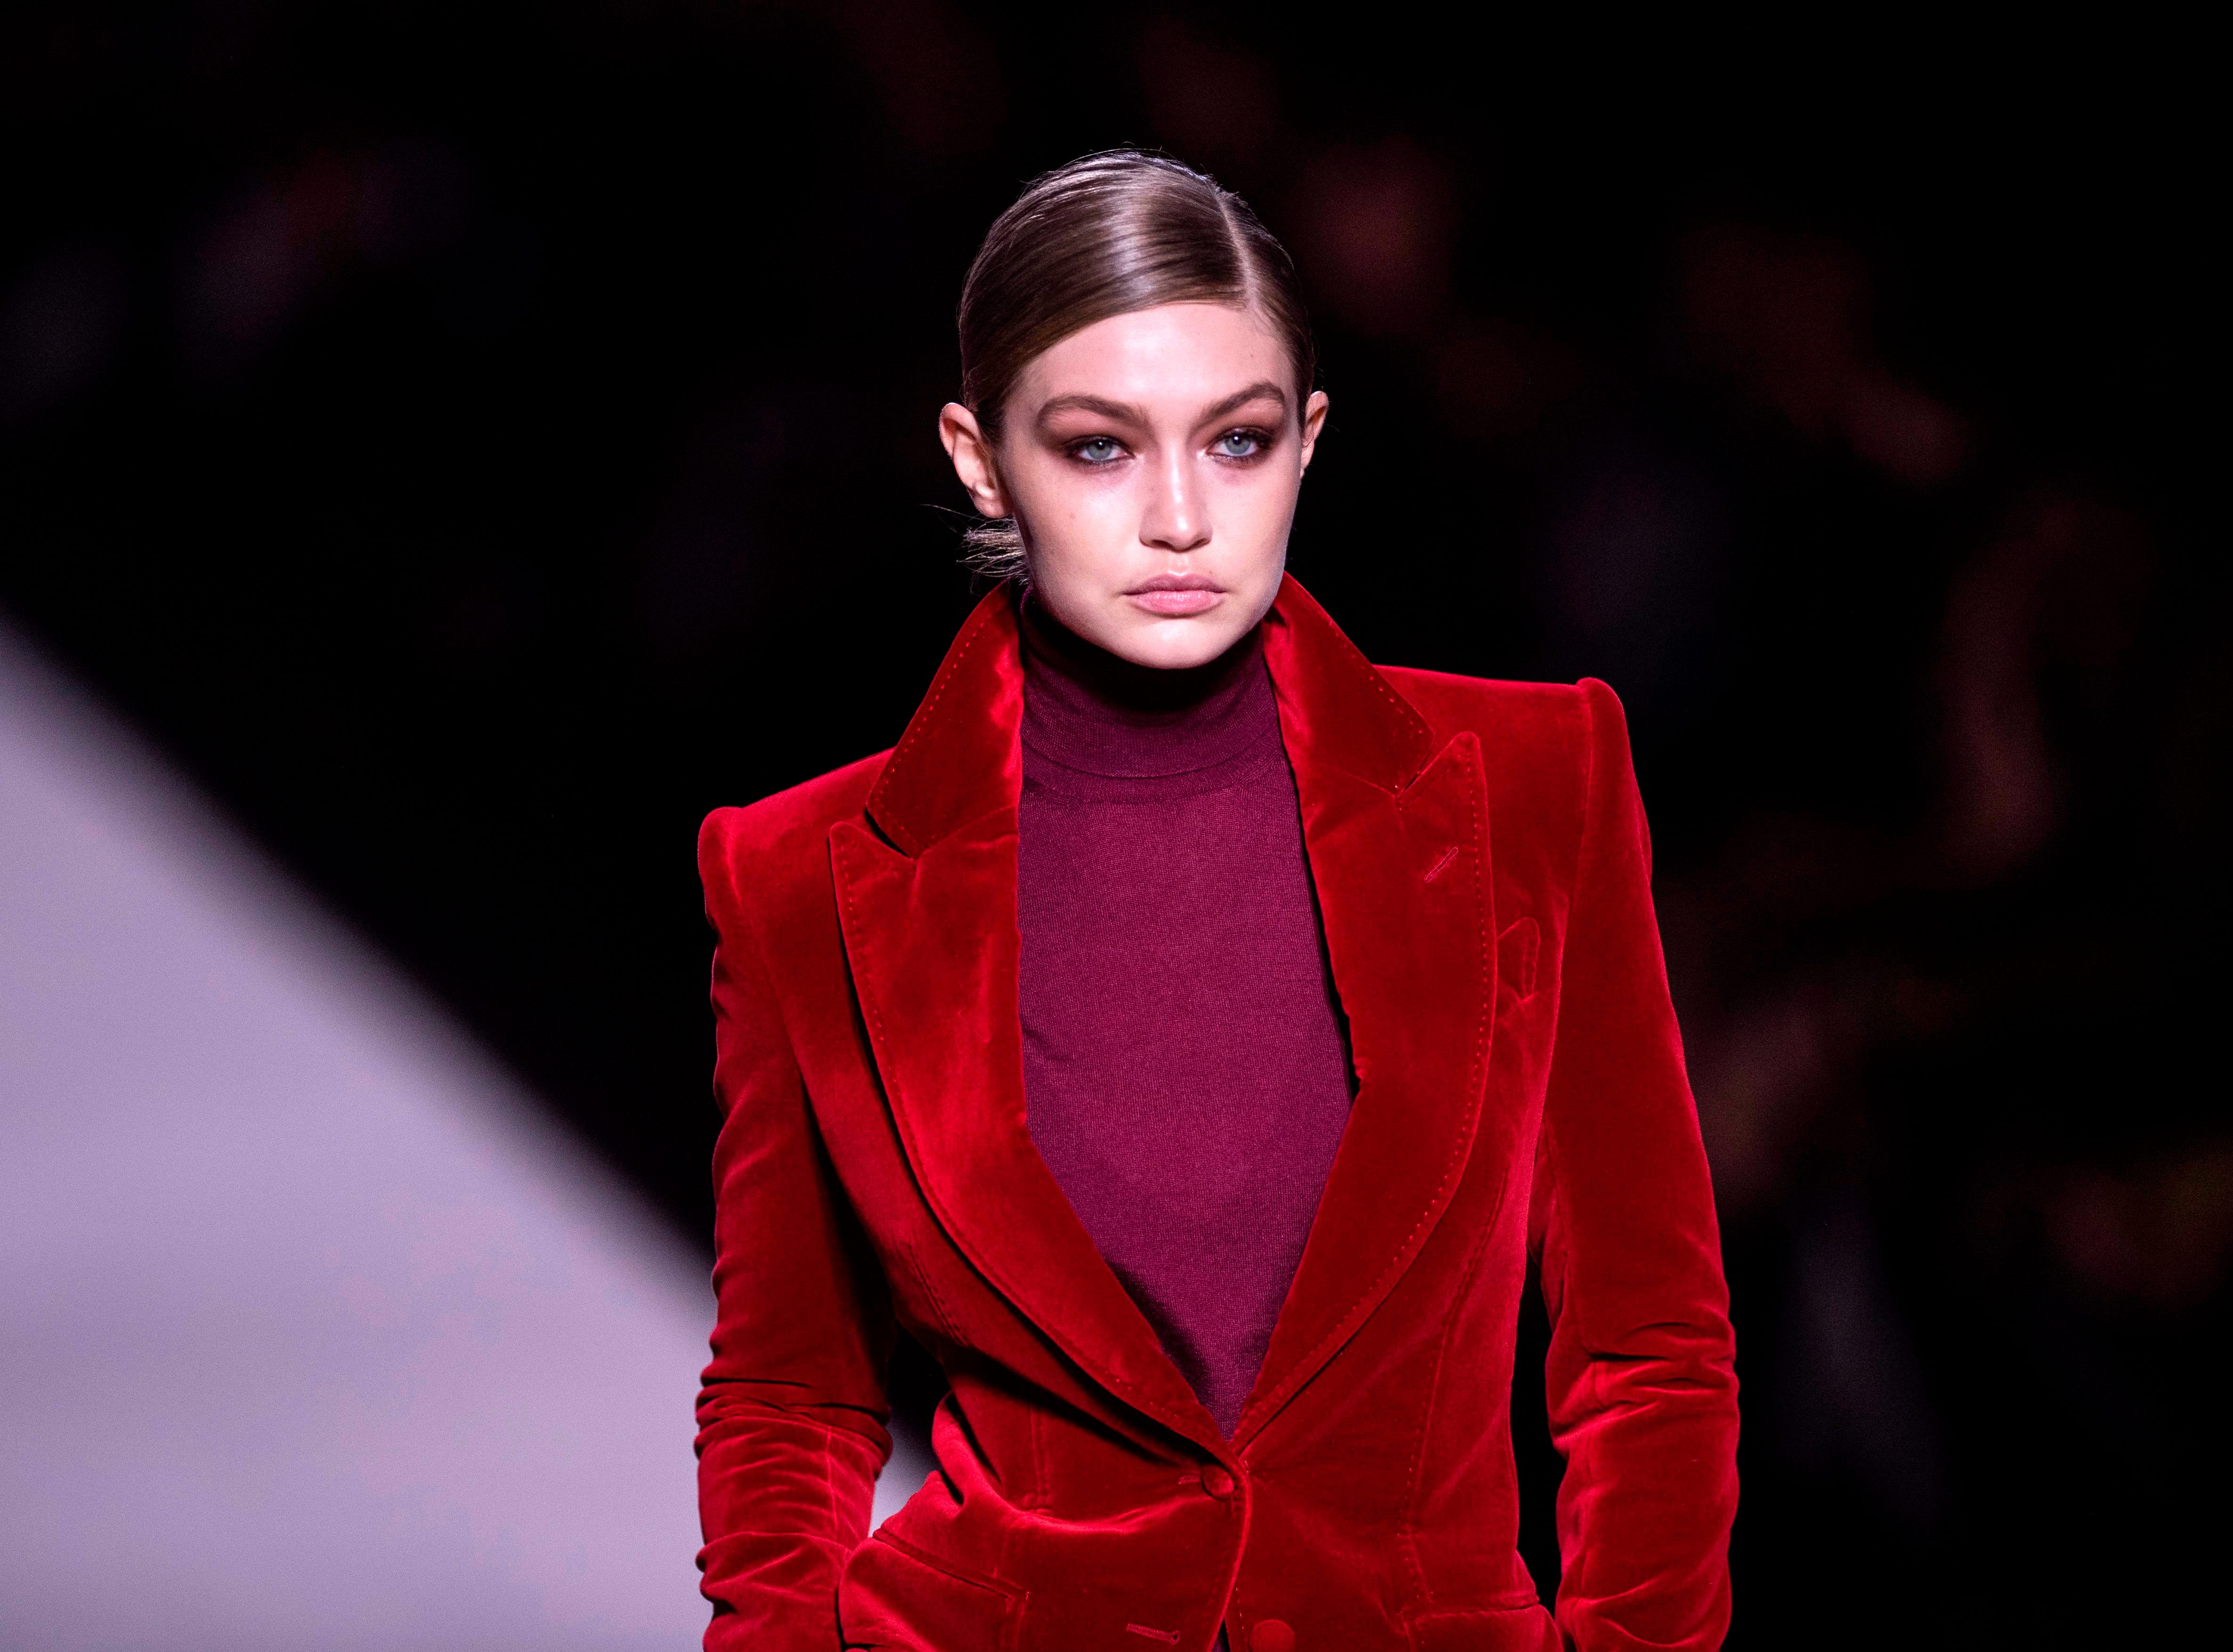 US model Gigi Hadid walks the runway during the Tom Ford fashion show at New York Fashion Week on February 6, 2019 in midtown Manhattan, New York City.